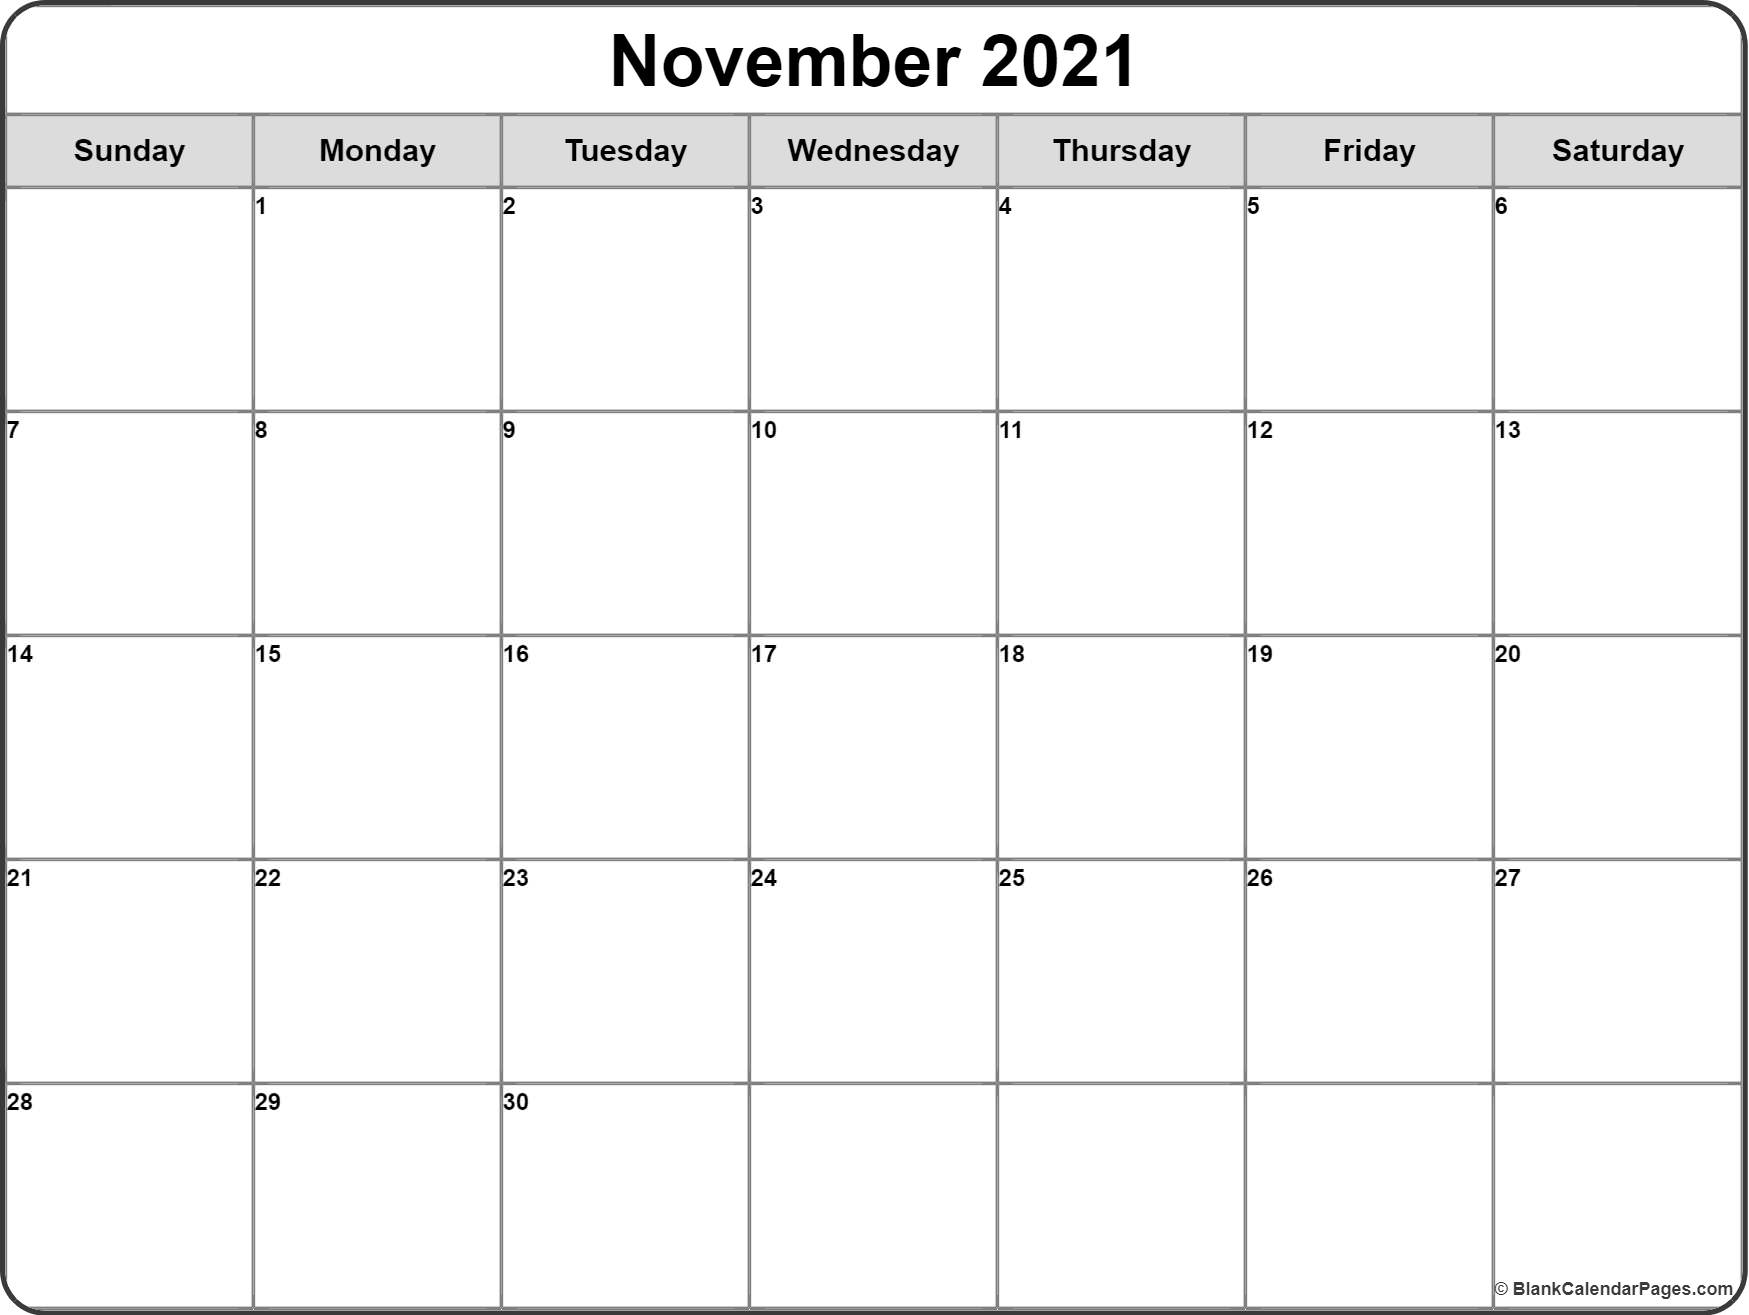 November 2021 monthly calendar template